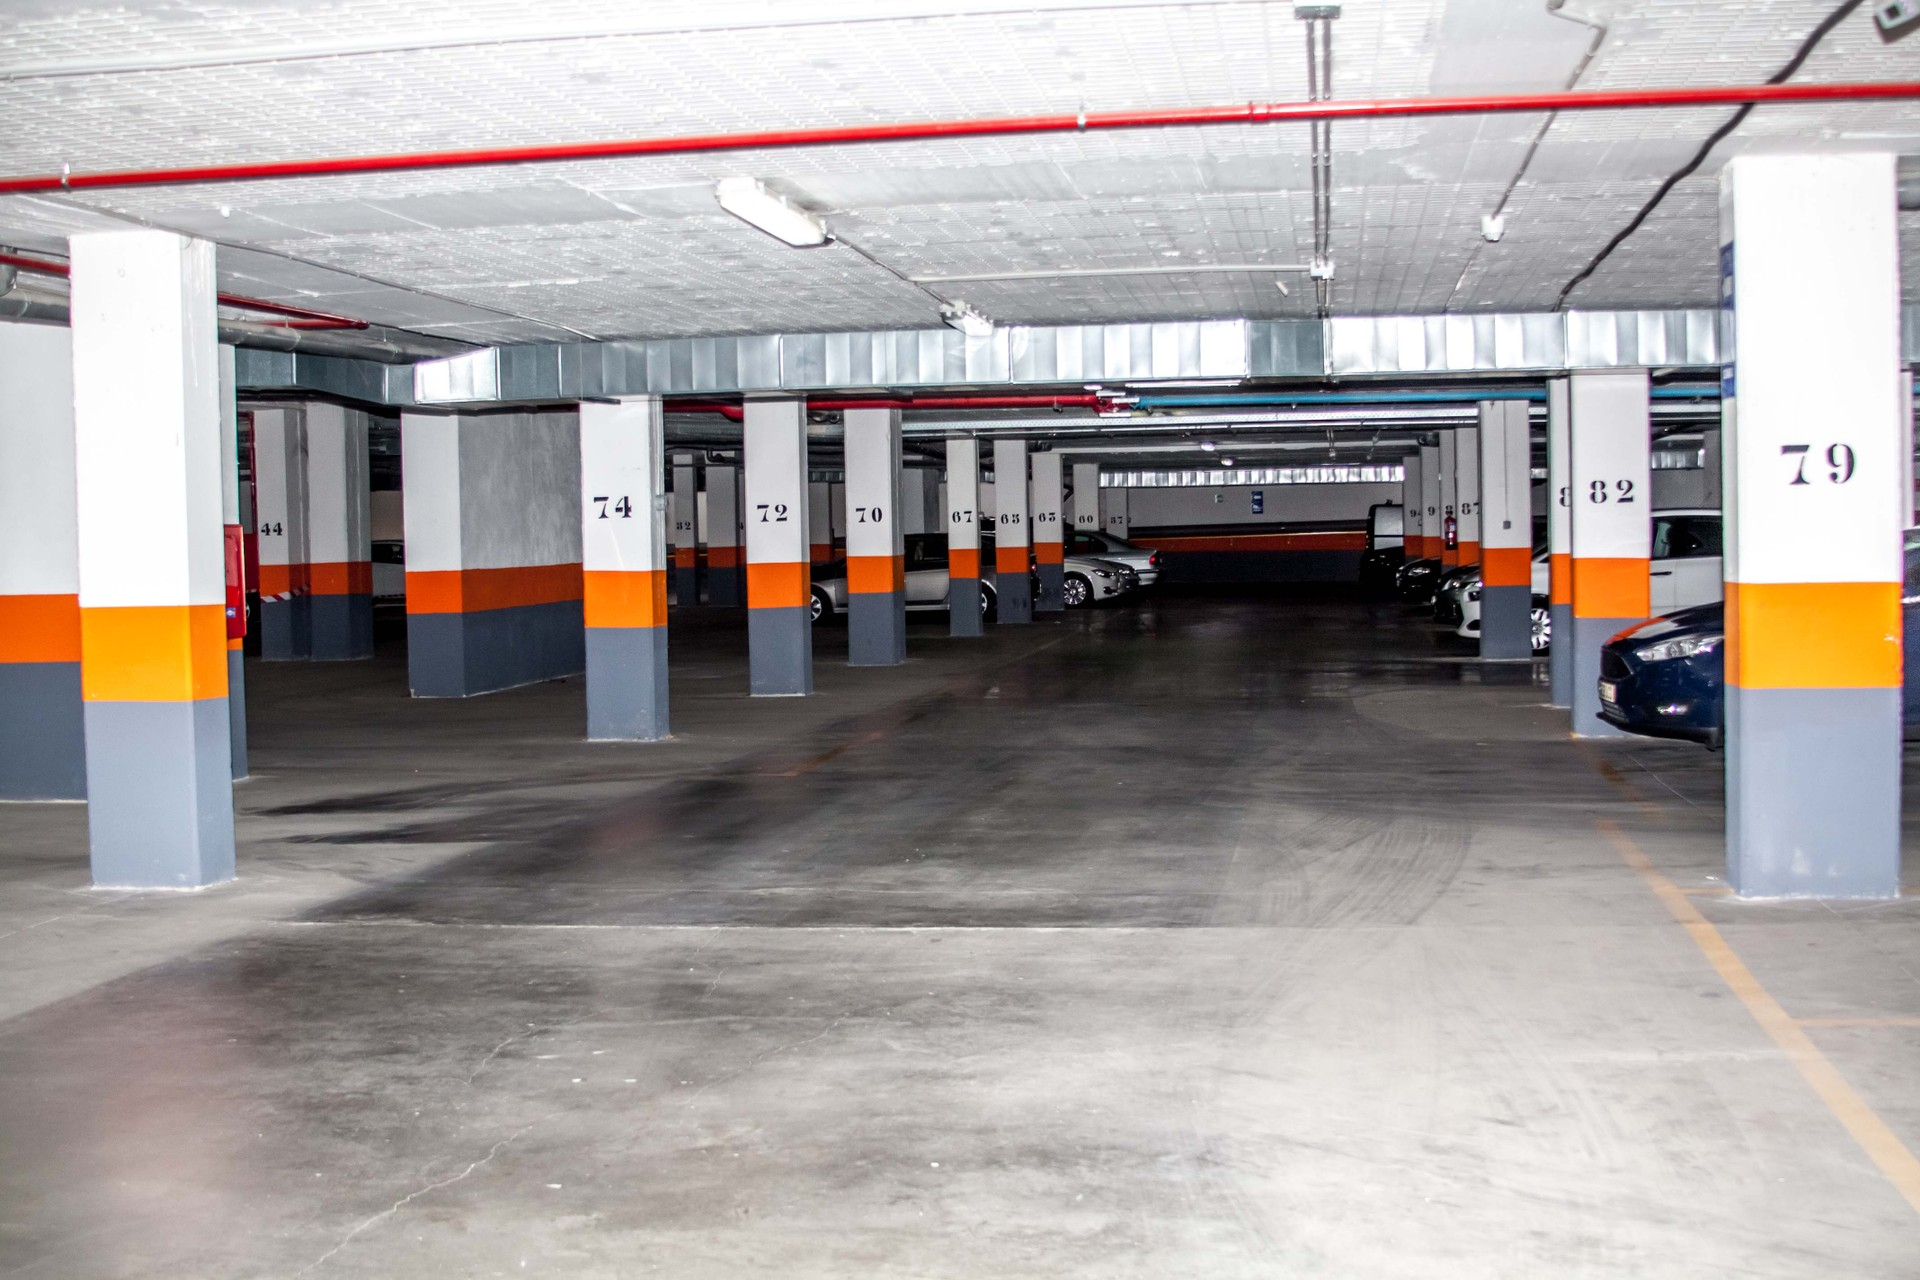 Oficina en Casco Histórico de Vallecas - Parking 2.jpg